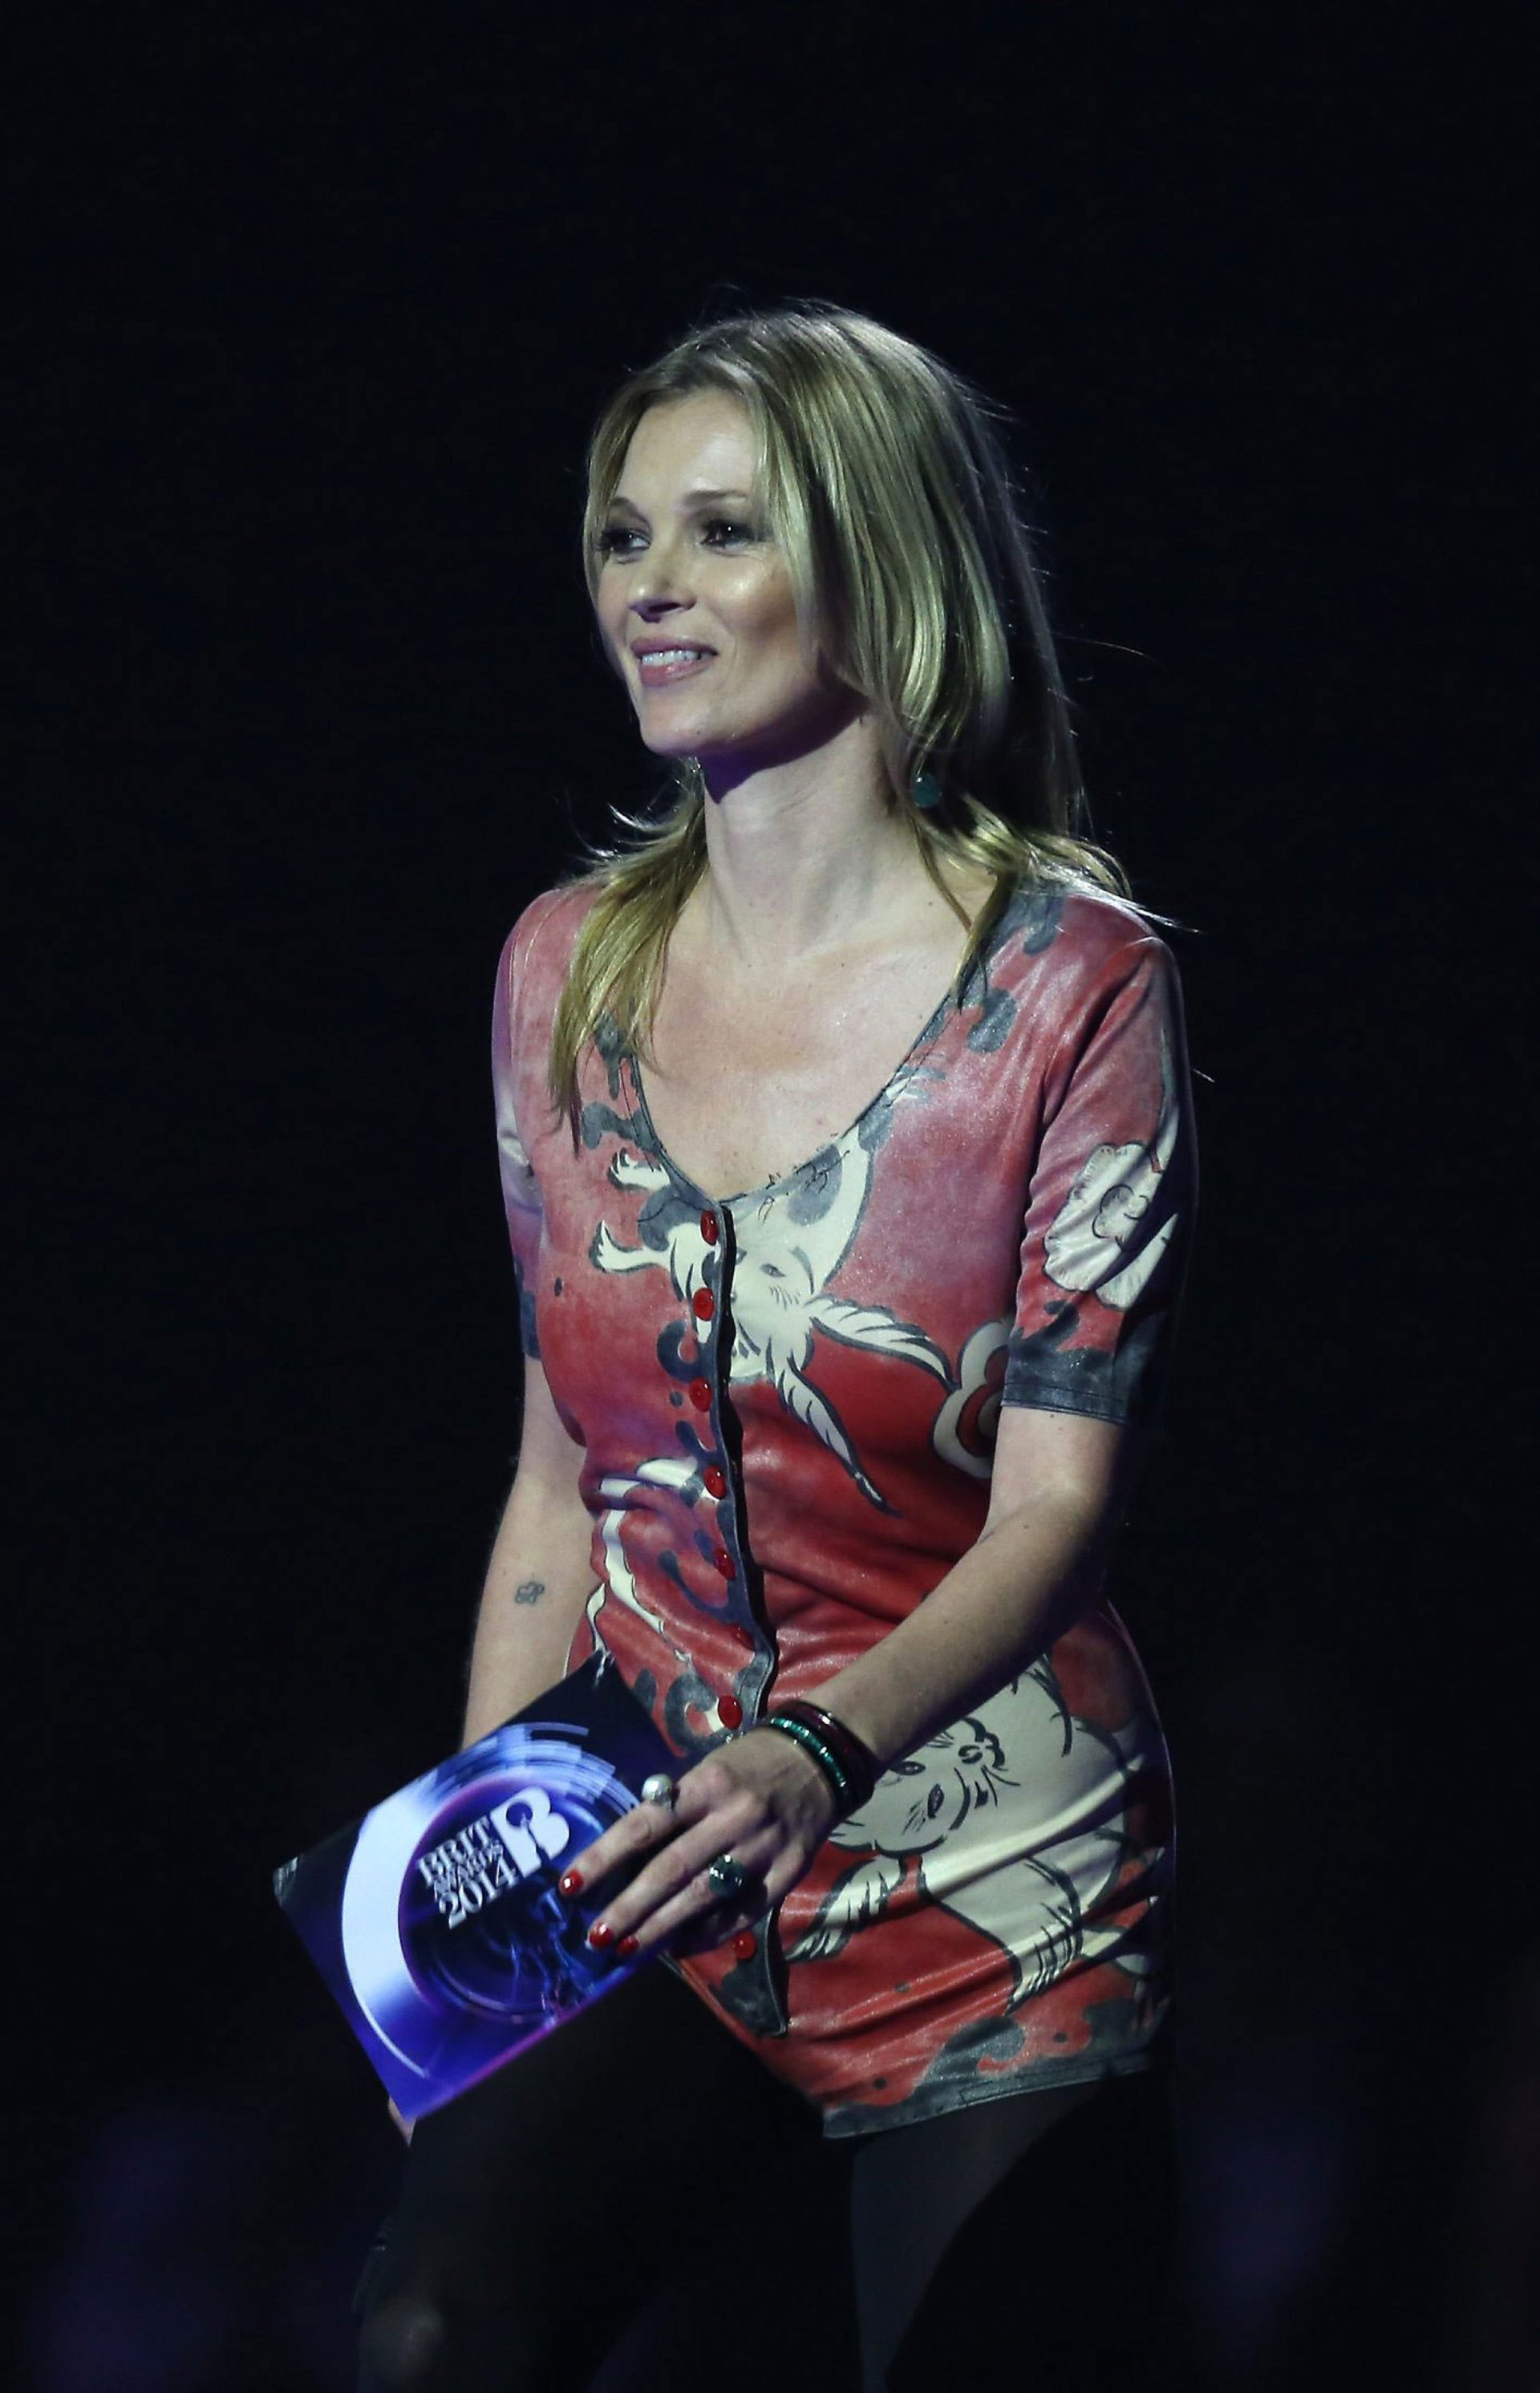 Kate Moss is seen on stage accepting the award for British Male Solo Artist on behalf of winner David Bowie at the BRIT Awards 2014 at the O2 Arena in London on Wednesday, Feb. 19, 2014.